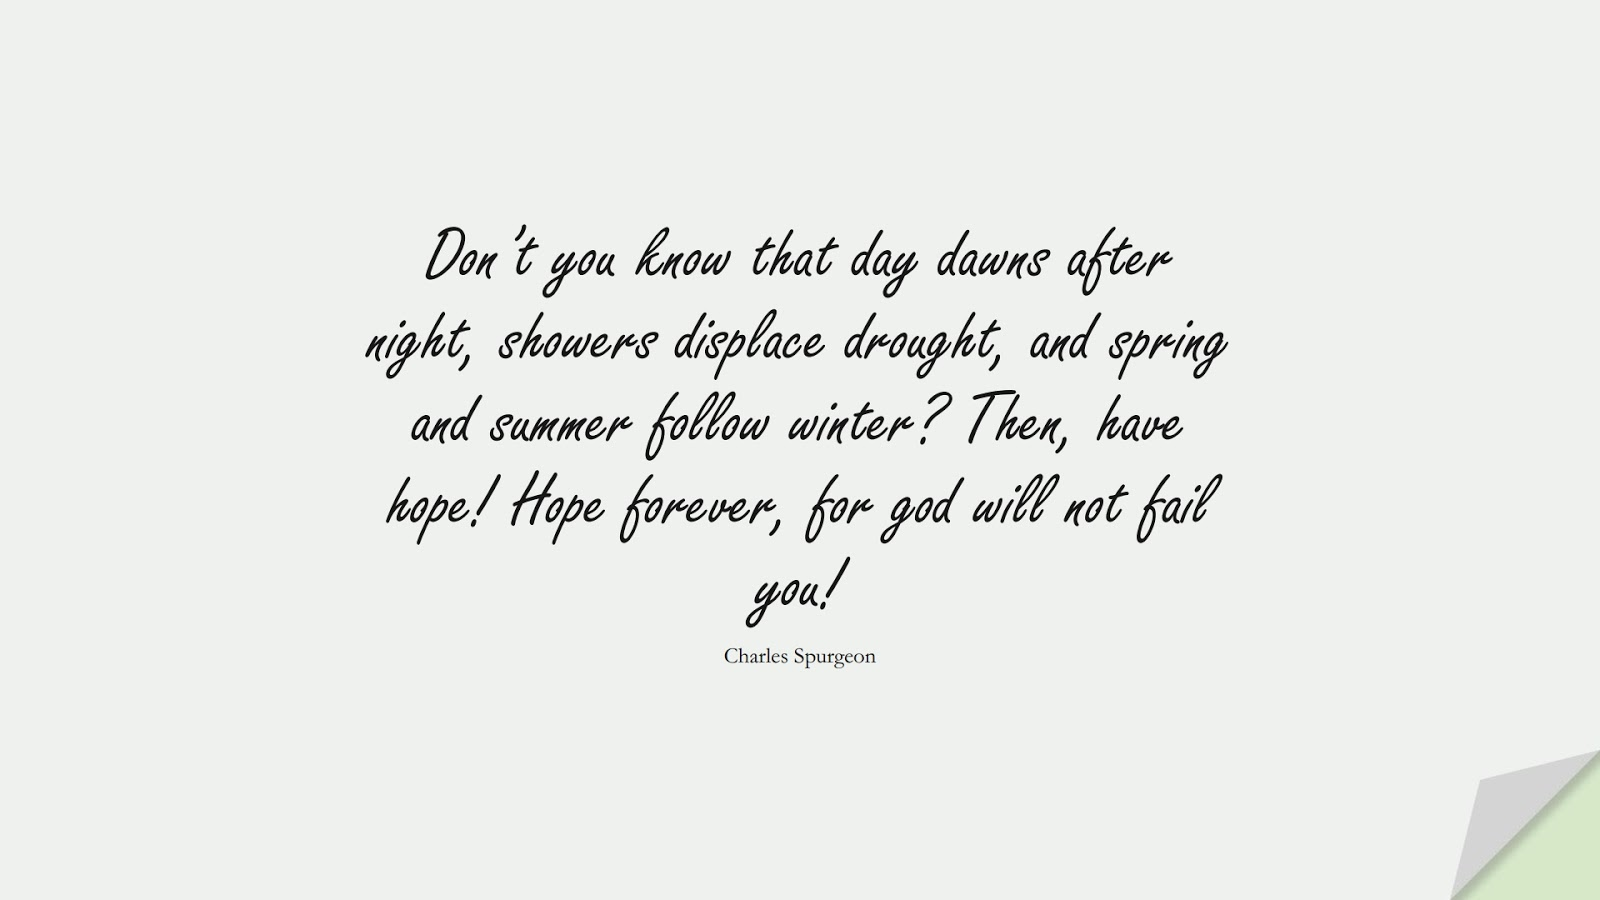 Don't you know that day dawns after night, showers displace drought, and spring and summer follow winter? Then, have hope! Hope forever, for god will not fail you! (Charles Spurgeon);  #EncouragingQuotes